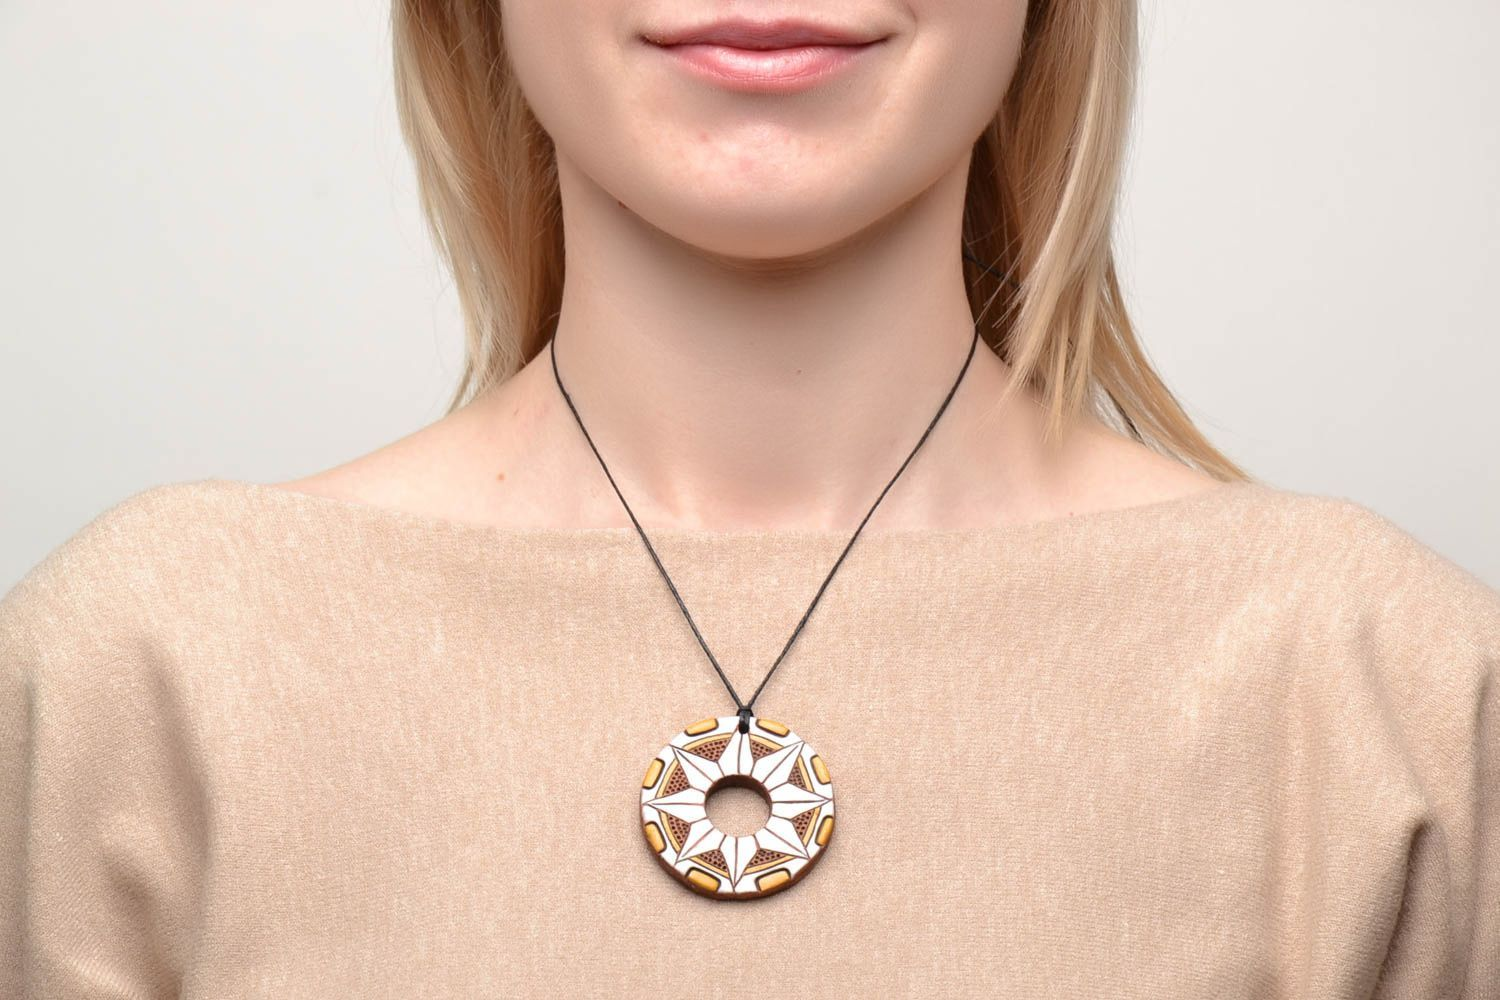 Ceramic pendant with ornaments in ethnic style photo 2